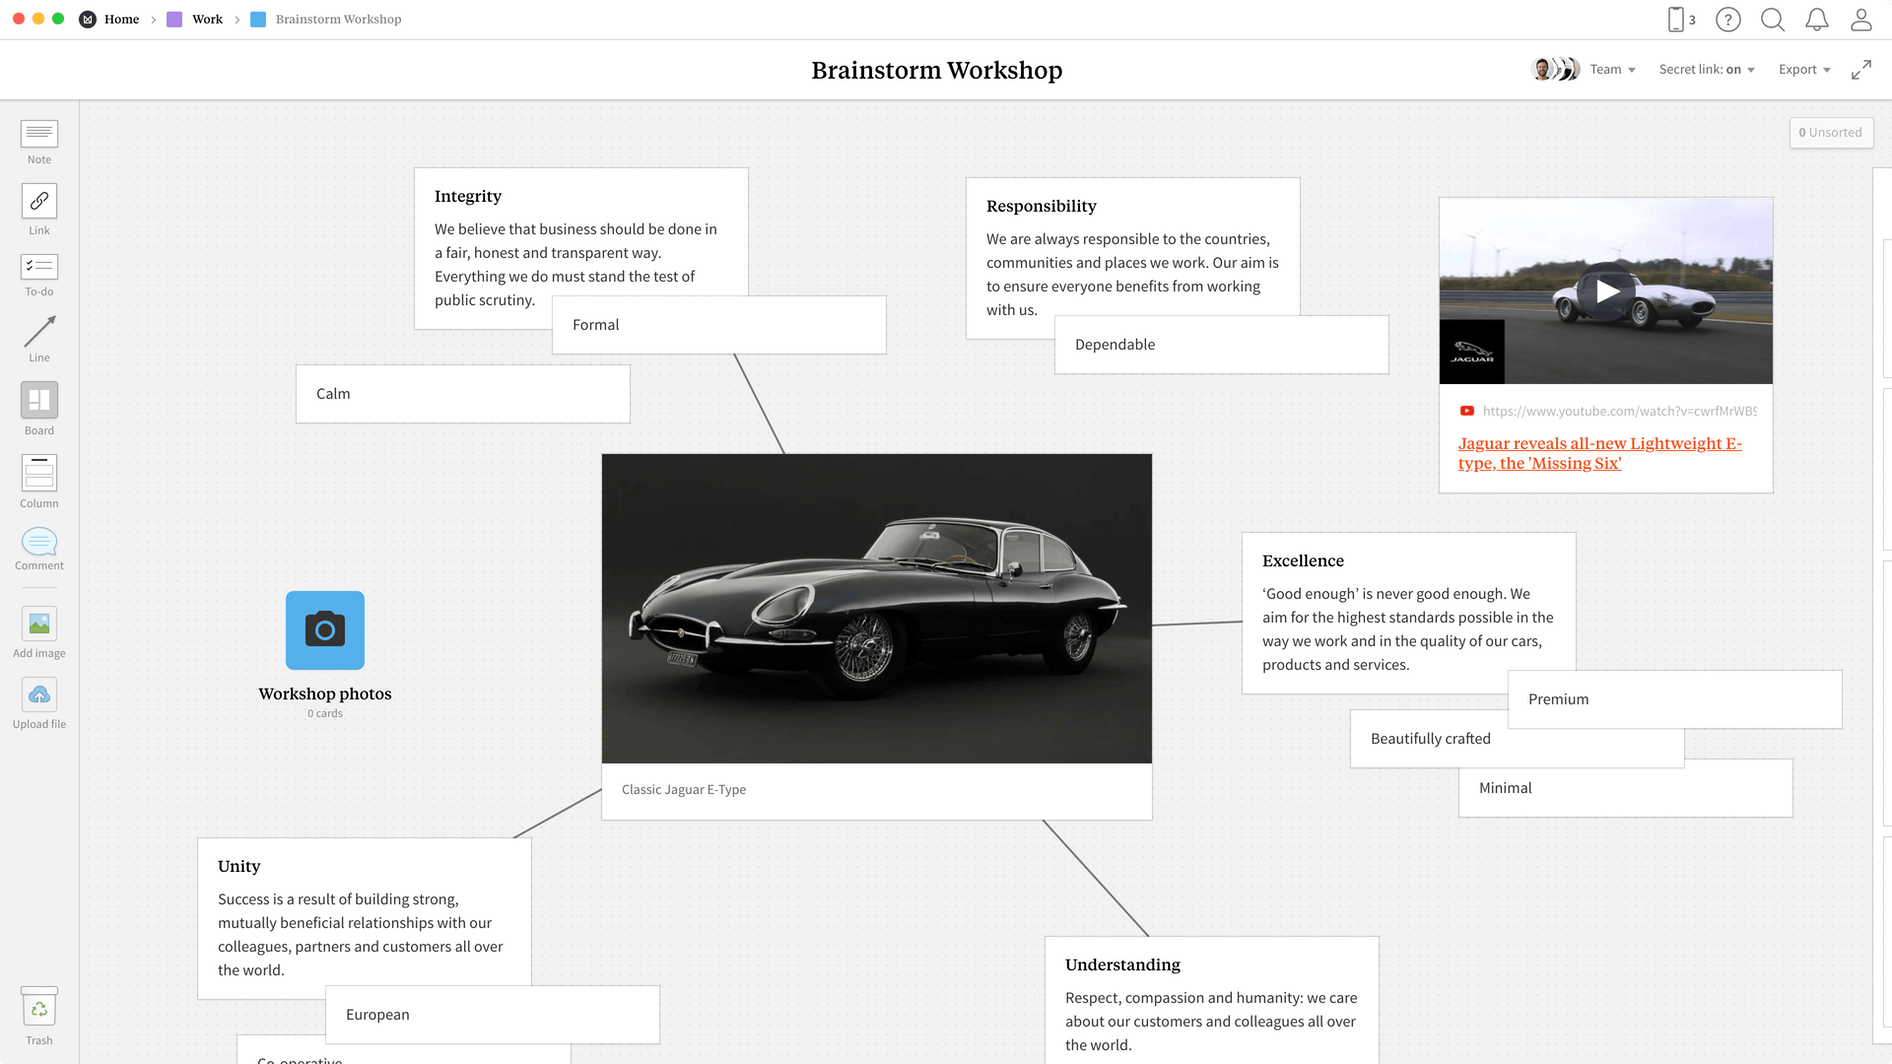 Brainstorming Template, within the Milanote app